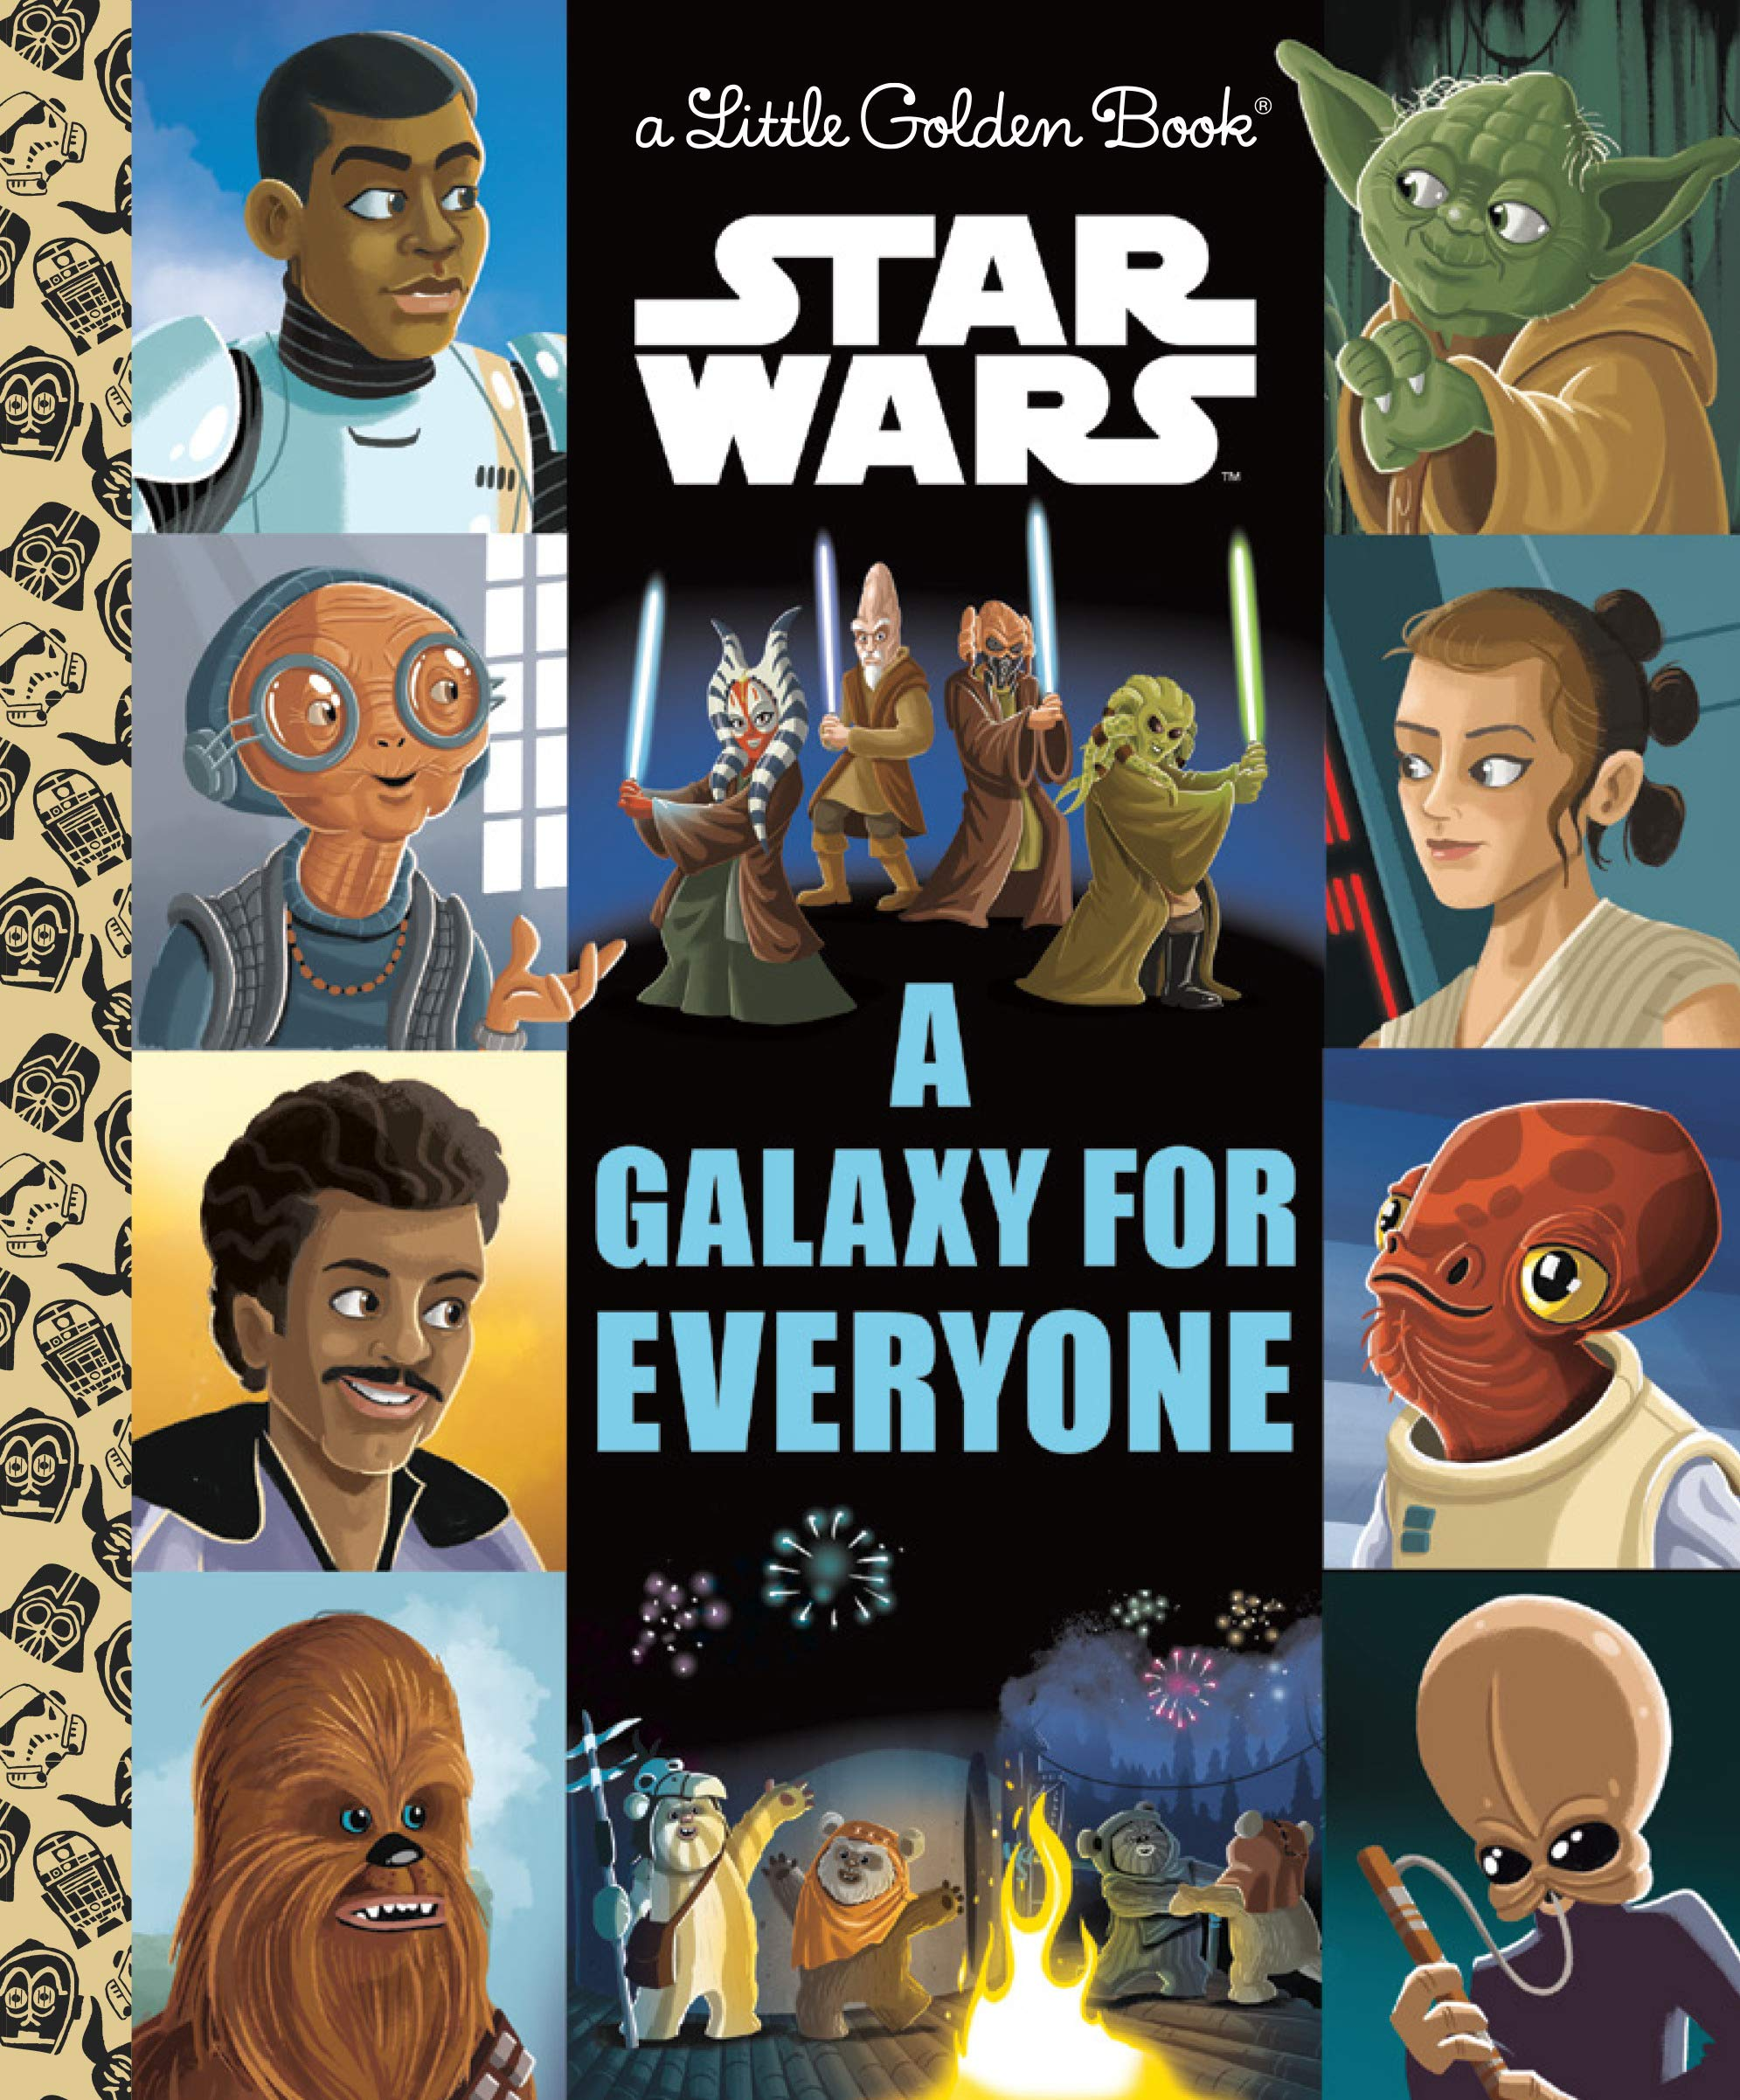 Star Wars: A Galaxy for Everyone